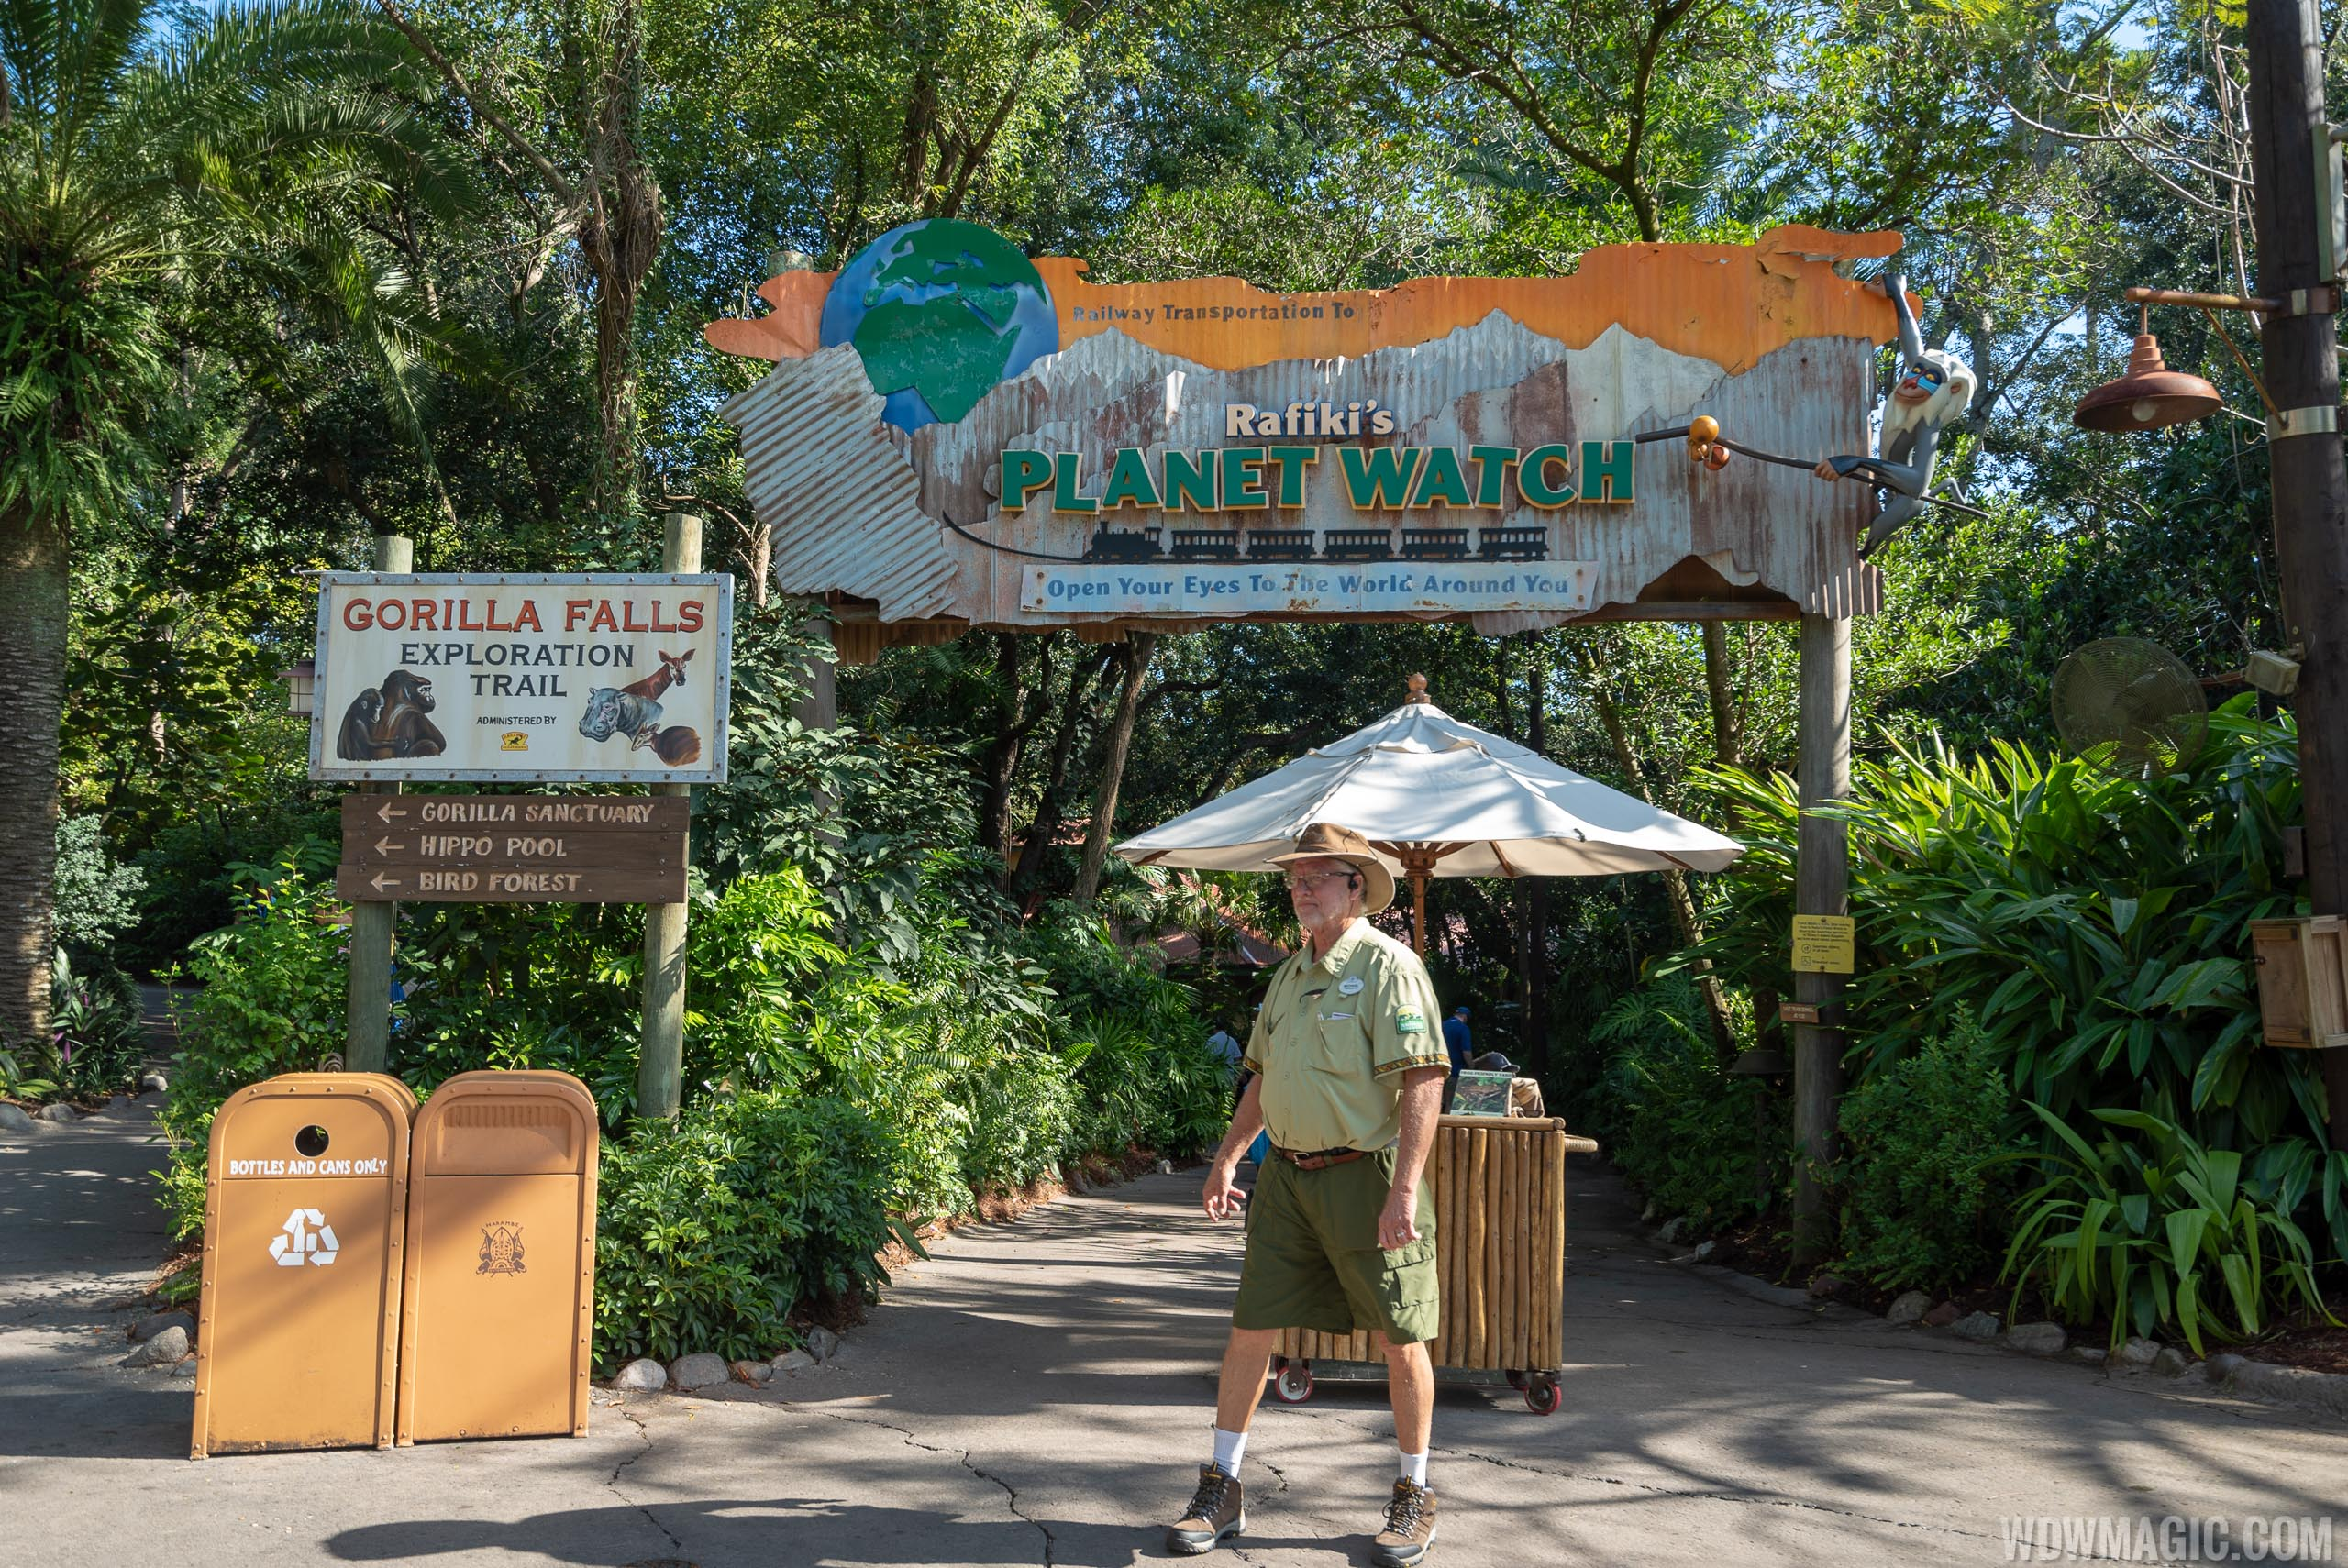 Rafiki's Planet Watch overview